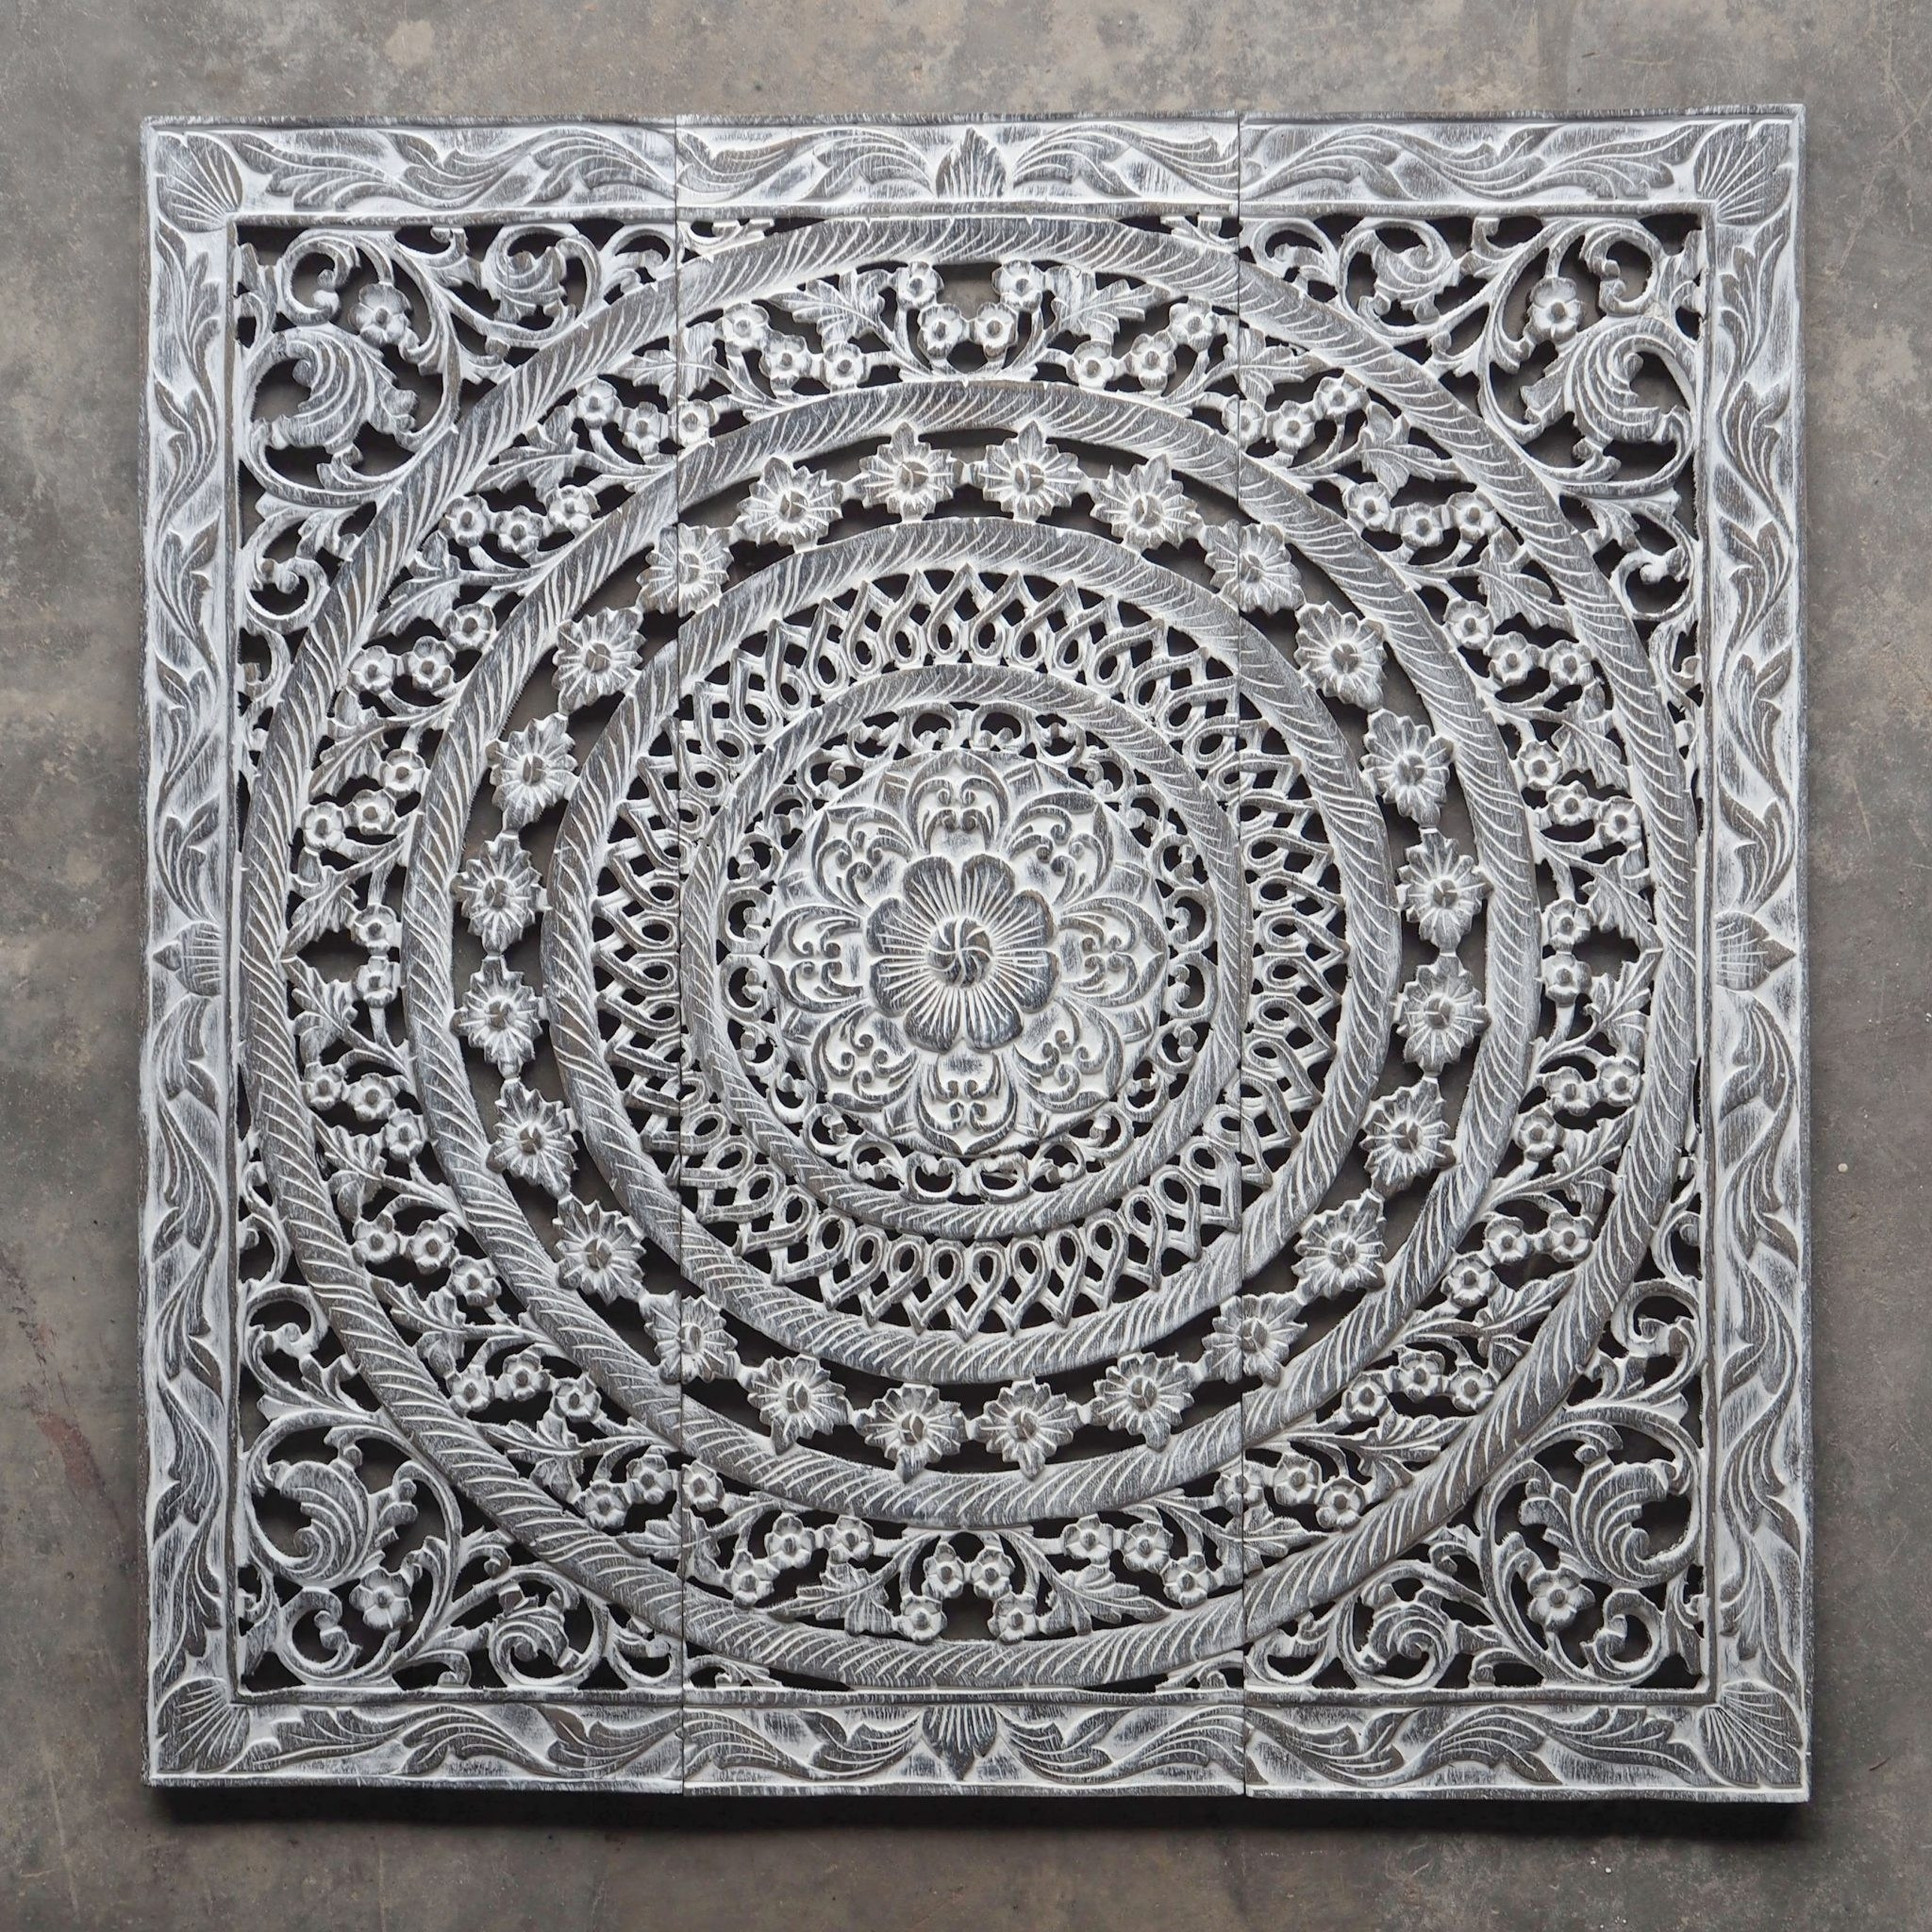 Compelling Carved Wooden Wall Decor Moroccan Wood Carving Wall In Recent Wood Carved Wall Art (Gallery 9 of 20)